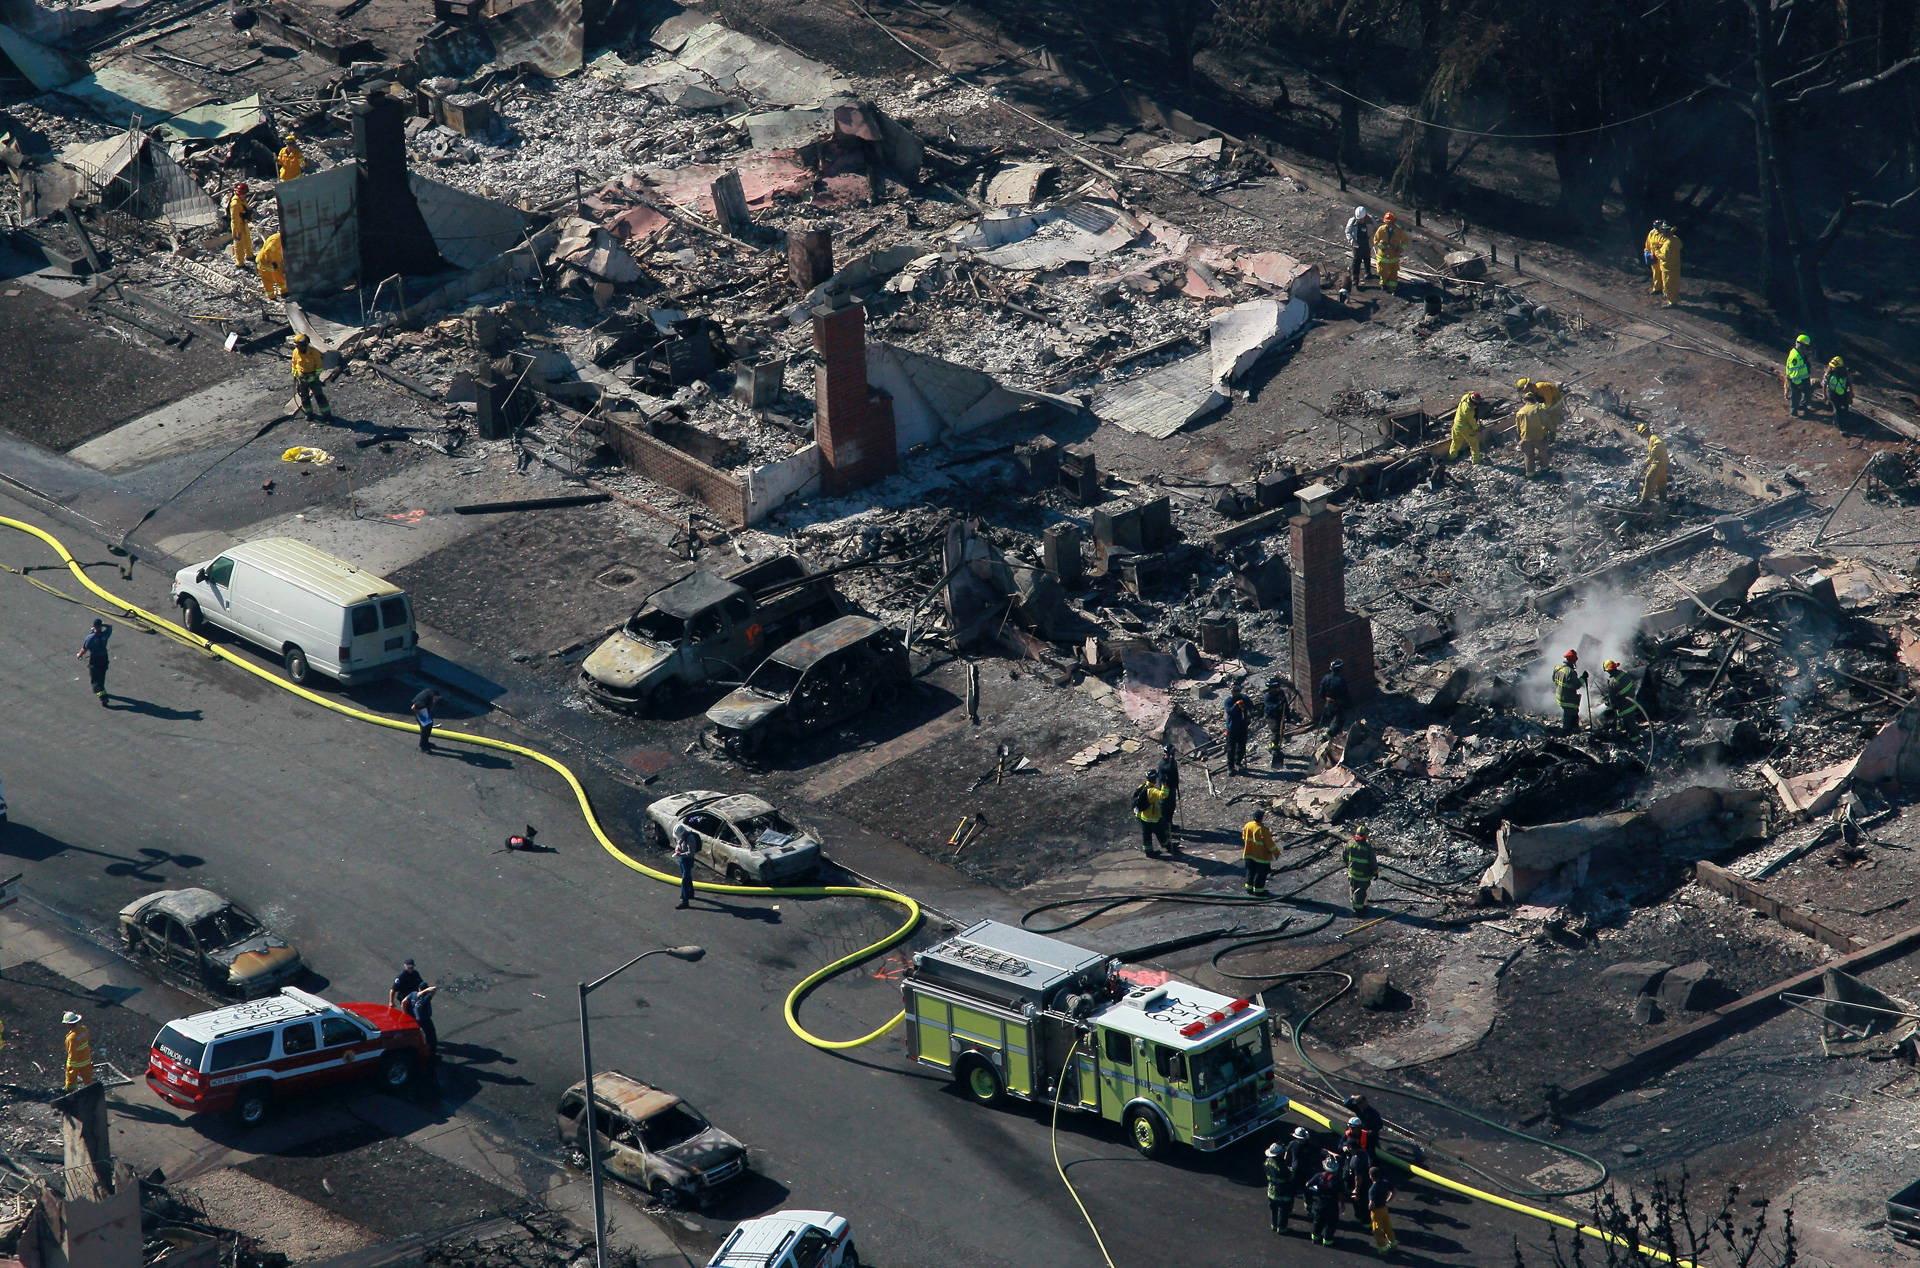 Firefighters mop up hot spots near homes destroyed by the massive gas pipeline explosion and fire on Sept. 9, 2010 in San Bruno. Justin Sullivan/Getty Images